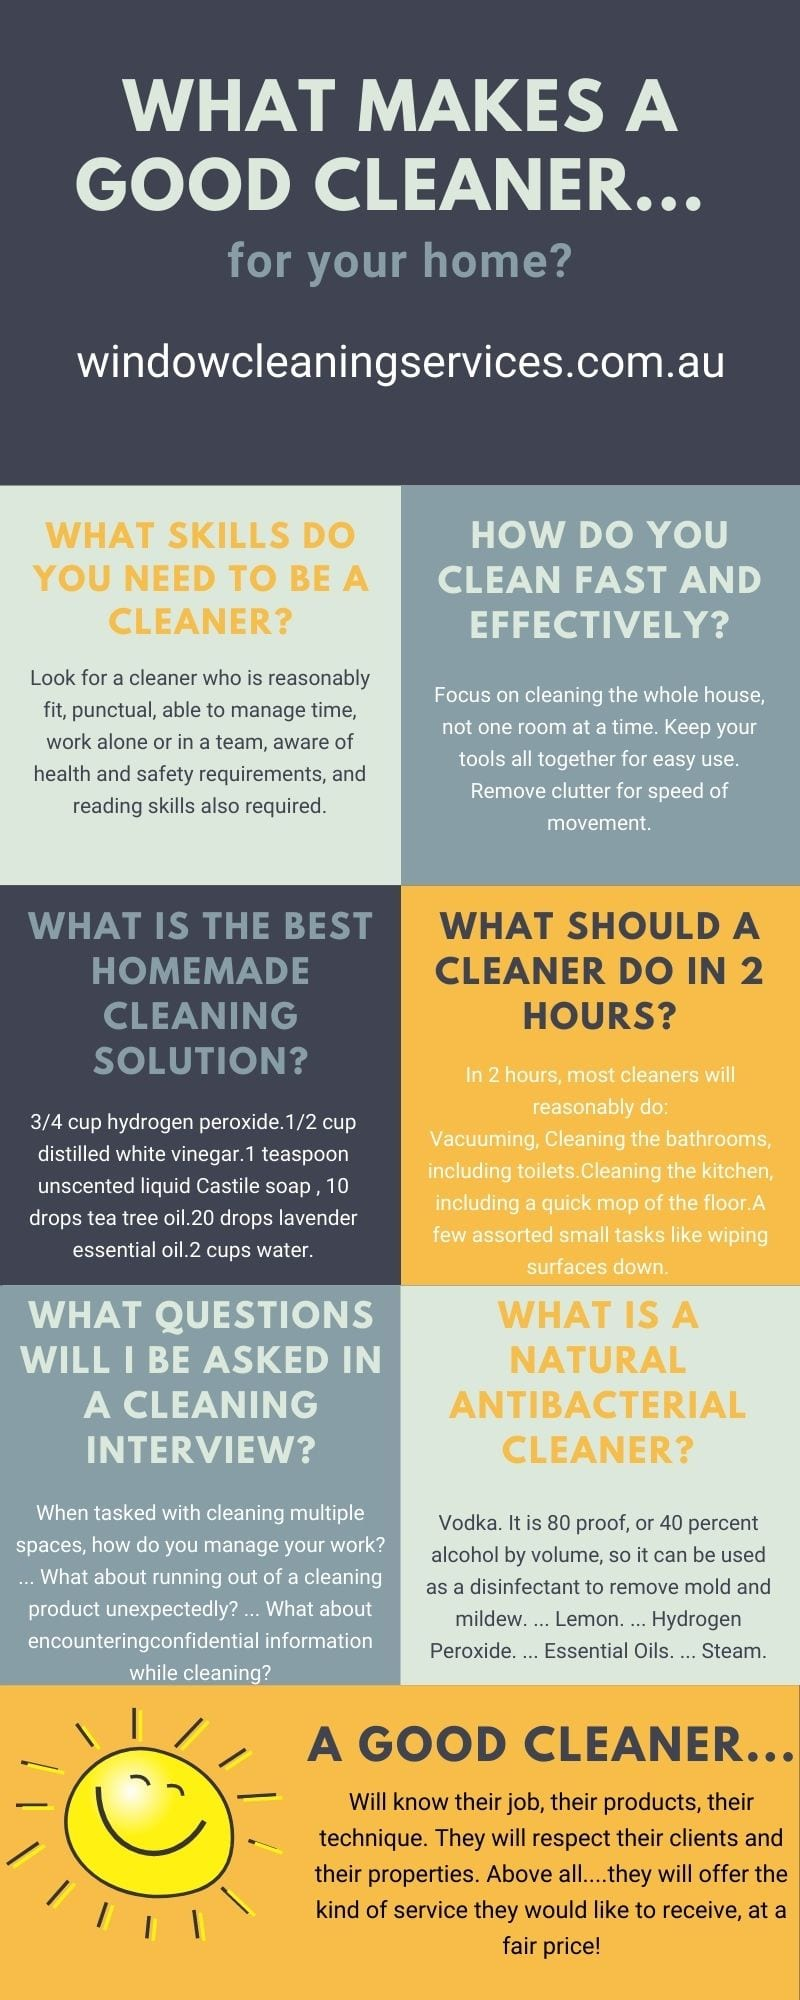 What Makes A Good Cleaner?